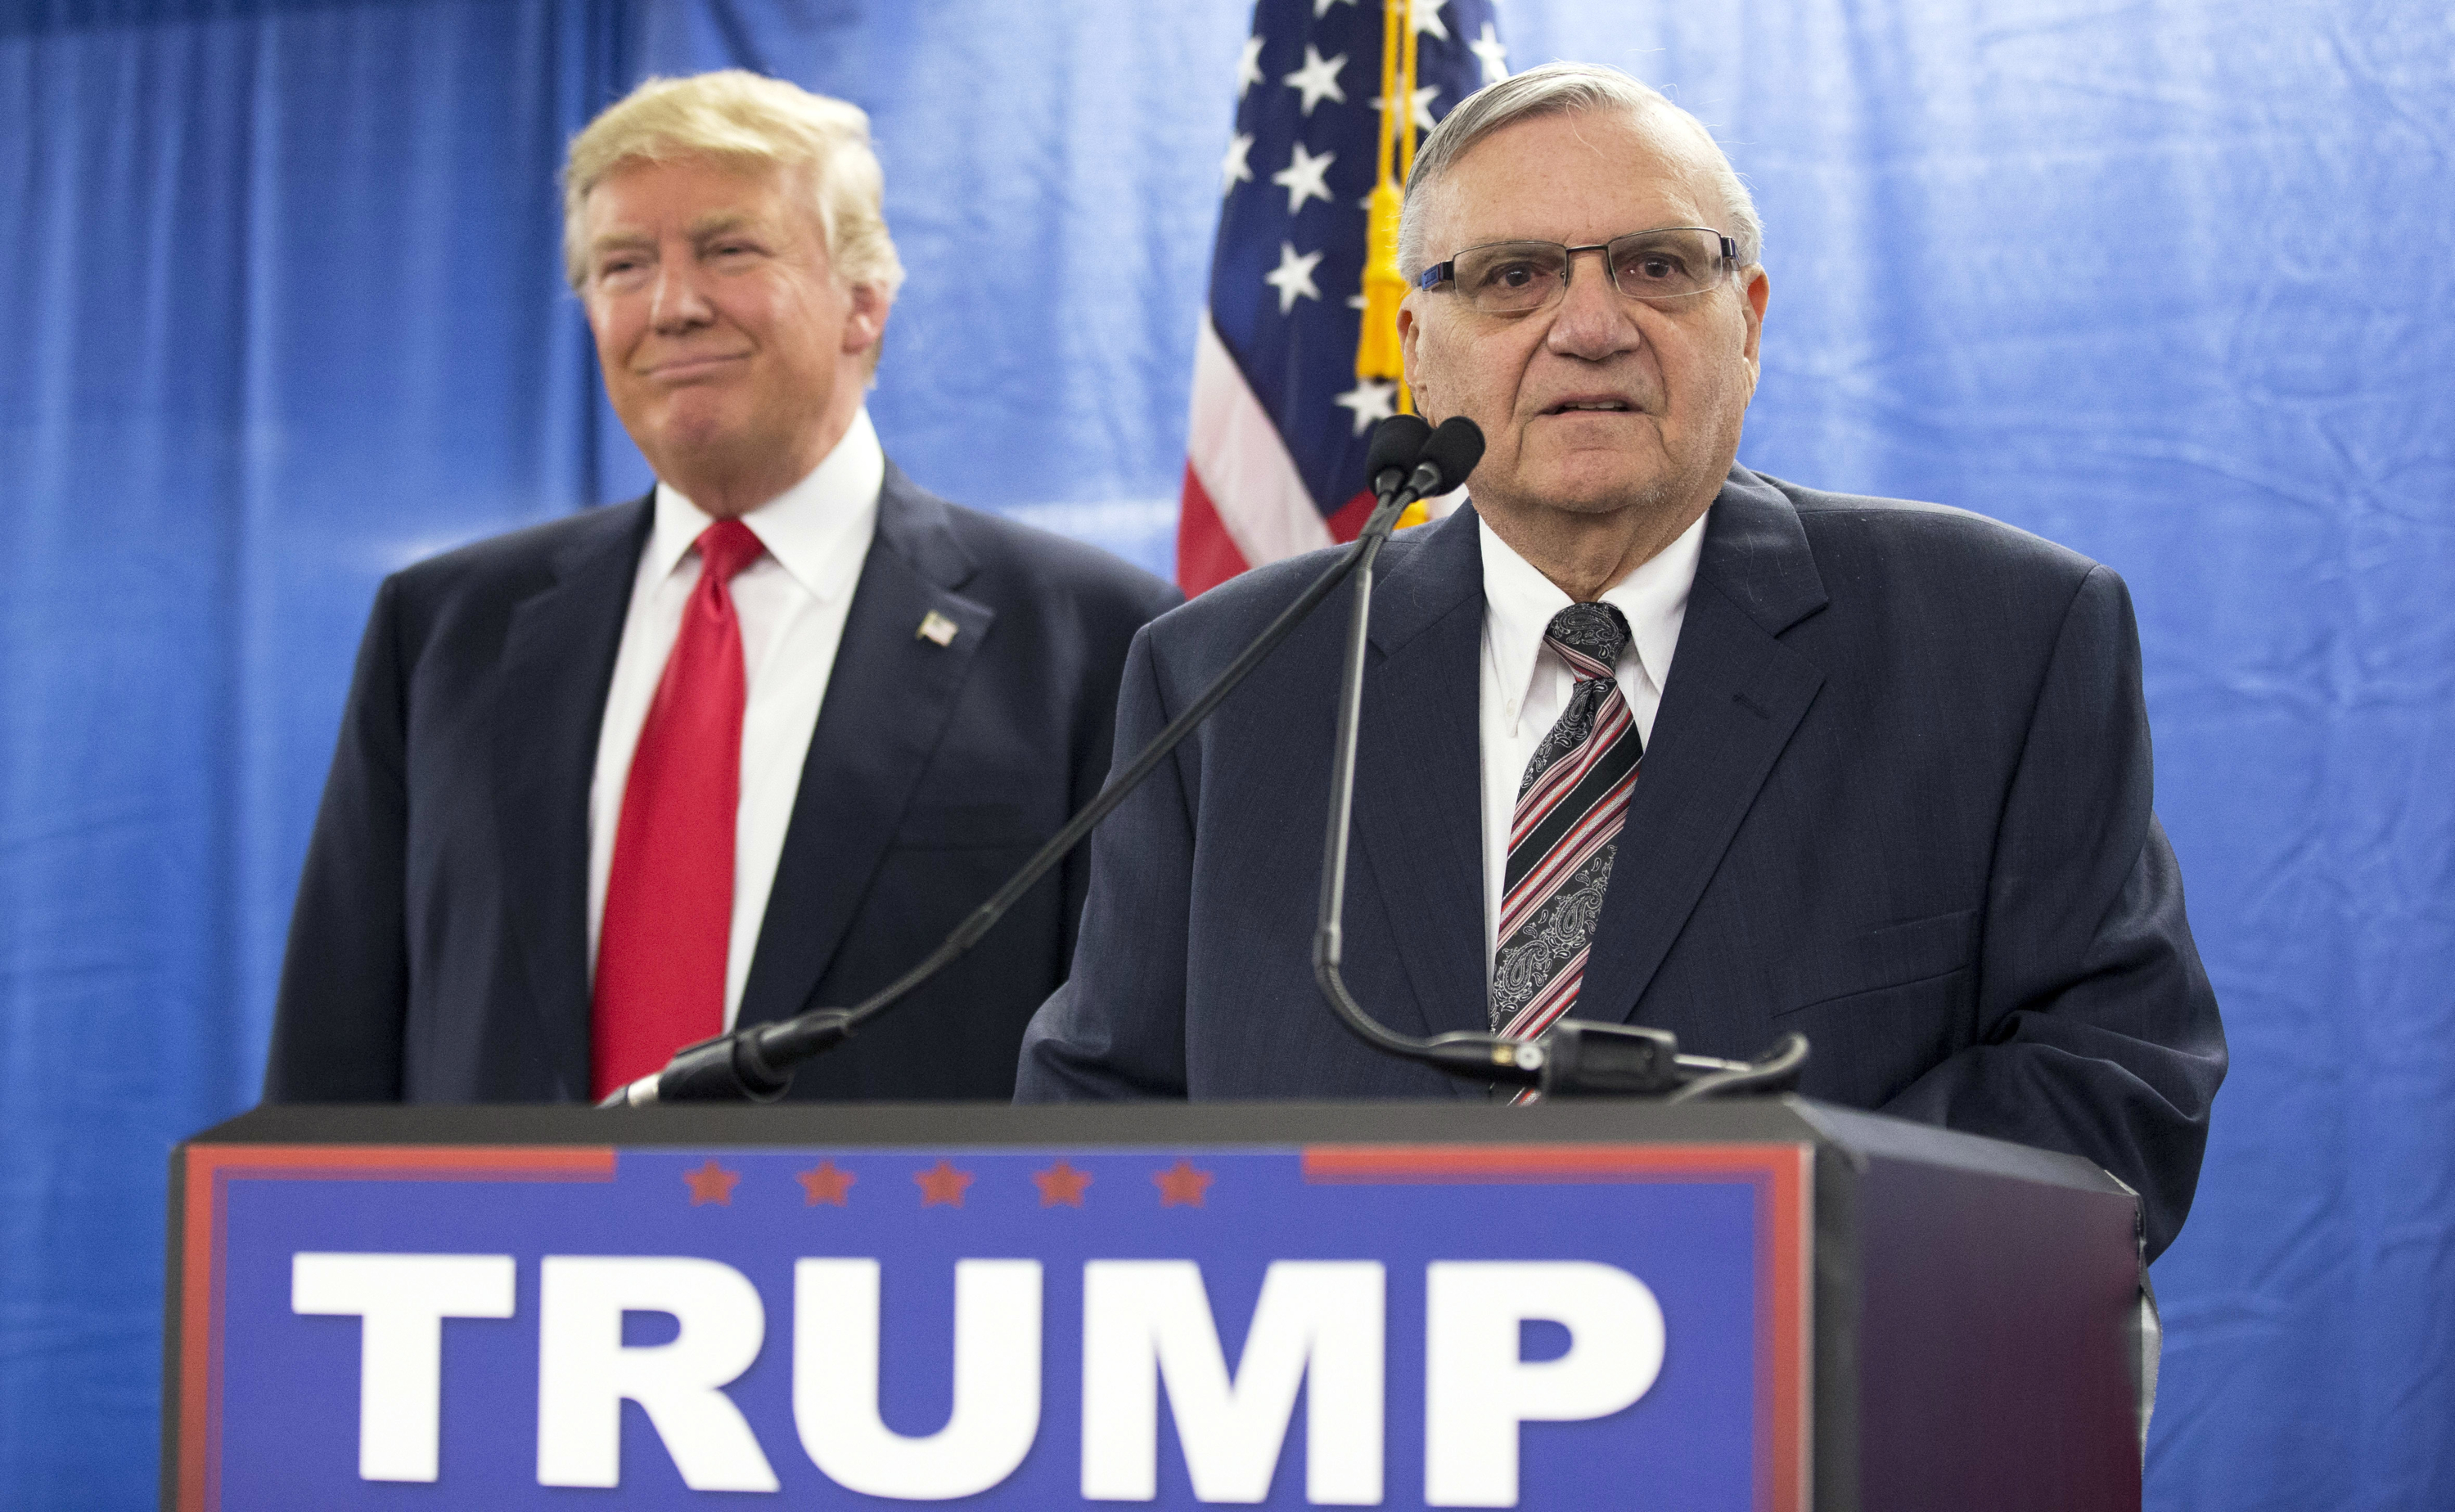 "FILE - In this Jan. 26, 2016 file photo, Republican presidential candidate Donald Trump, left, is joined by Maricopa County, Ariz., Sheriff Joe Arpaio during a new conference in Marshalltown, Iowa. President Donald Trump has pardoned former sheriff Joe Arpaio following his conviction for intentionally disobeying a judge's order in an immigration case. The White House announced the move Friday night, Aug. 25, 2017, saying the 85-year-old ex-sheriff of Arizona's Maricopa County was a ""worthy candidate"" for a presidential pardon. (AP Photo/Mary Altaffer, File)"